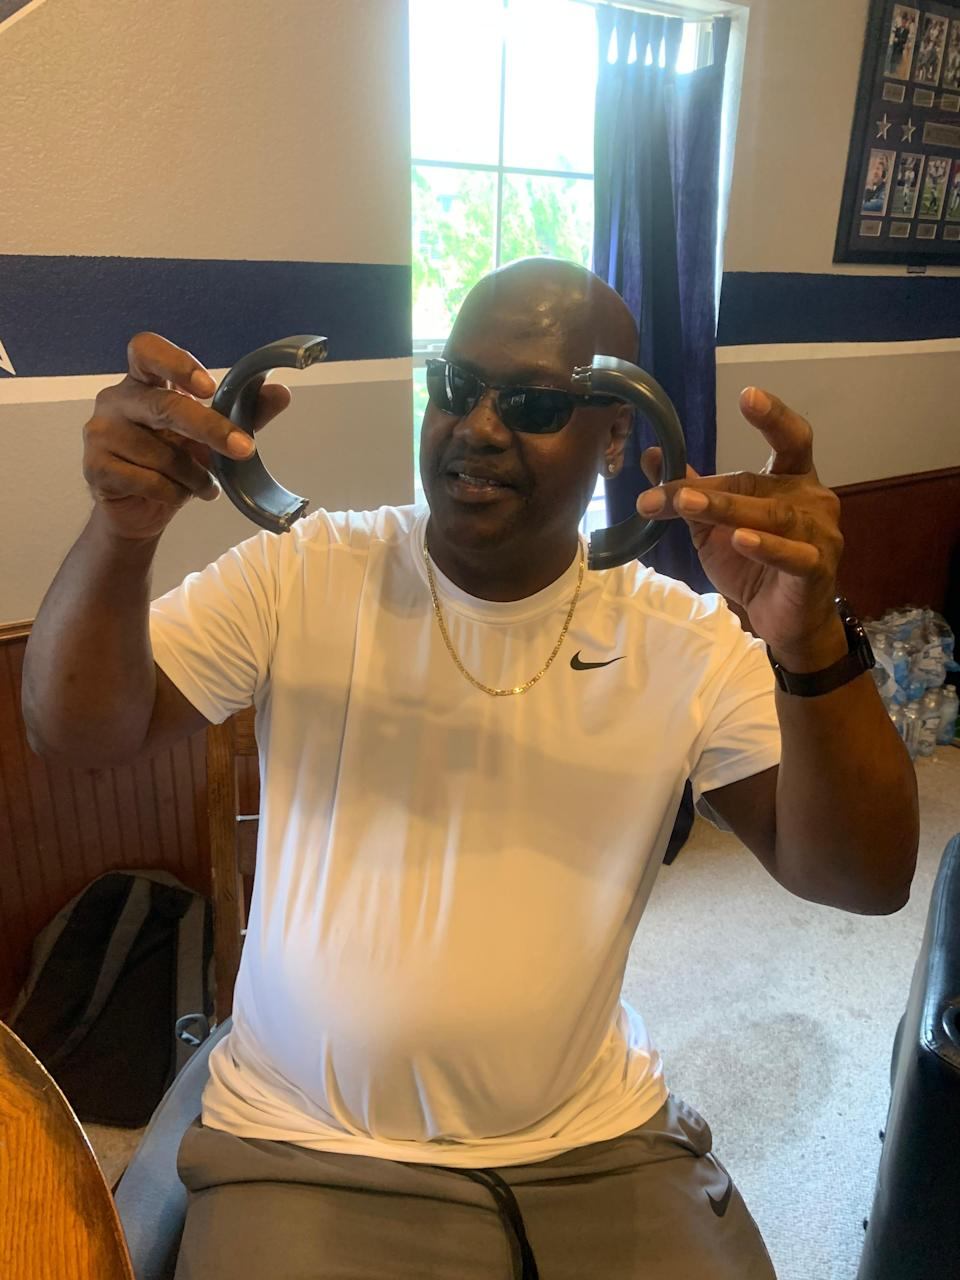 Curtis Flowers, 50, holds up his disassembled ankle monitor after Mississippi Attorney General Lynn Fitch dropped the case against him Sept. 5, 2020. Flowers was tried six times in the murder of four people at a furniture store in Winona. Flowers' last conviction was overturned because the U.S. Supreme Court found that prosecutor Doug Evans racially discriminated during jury selection.